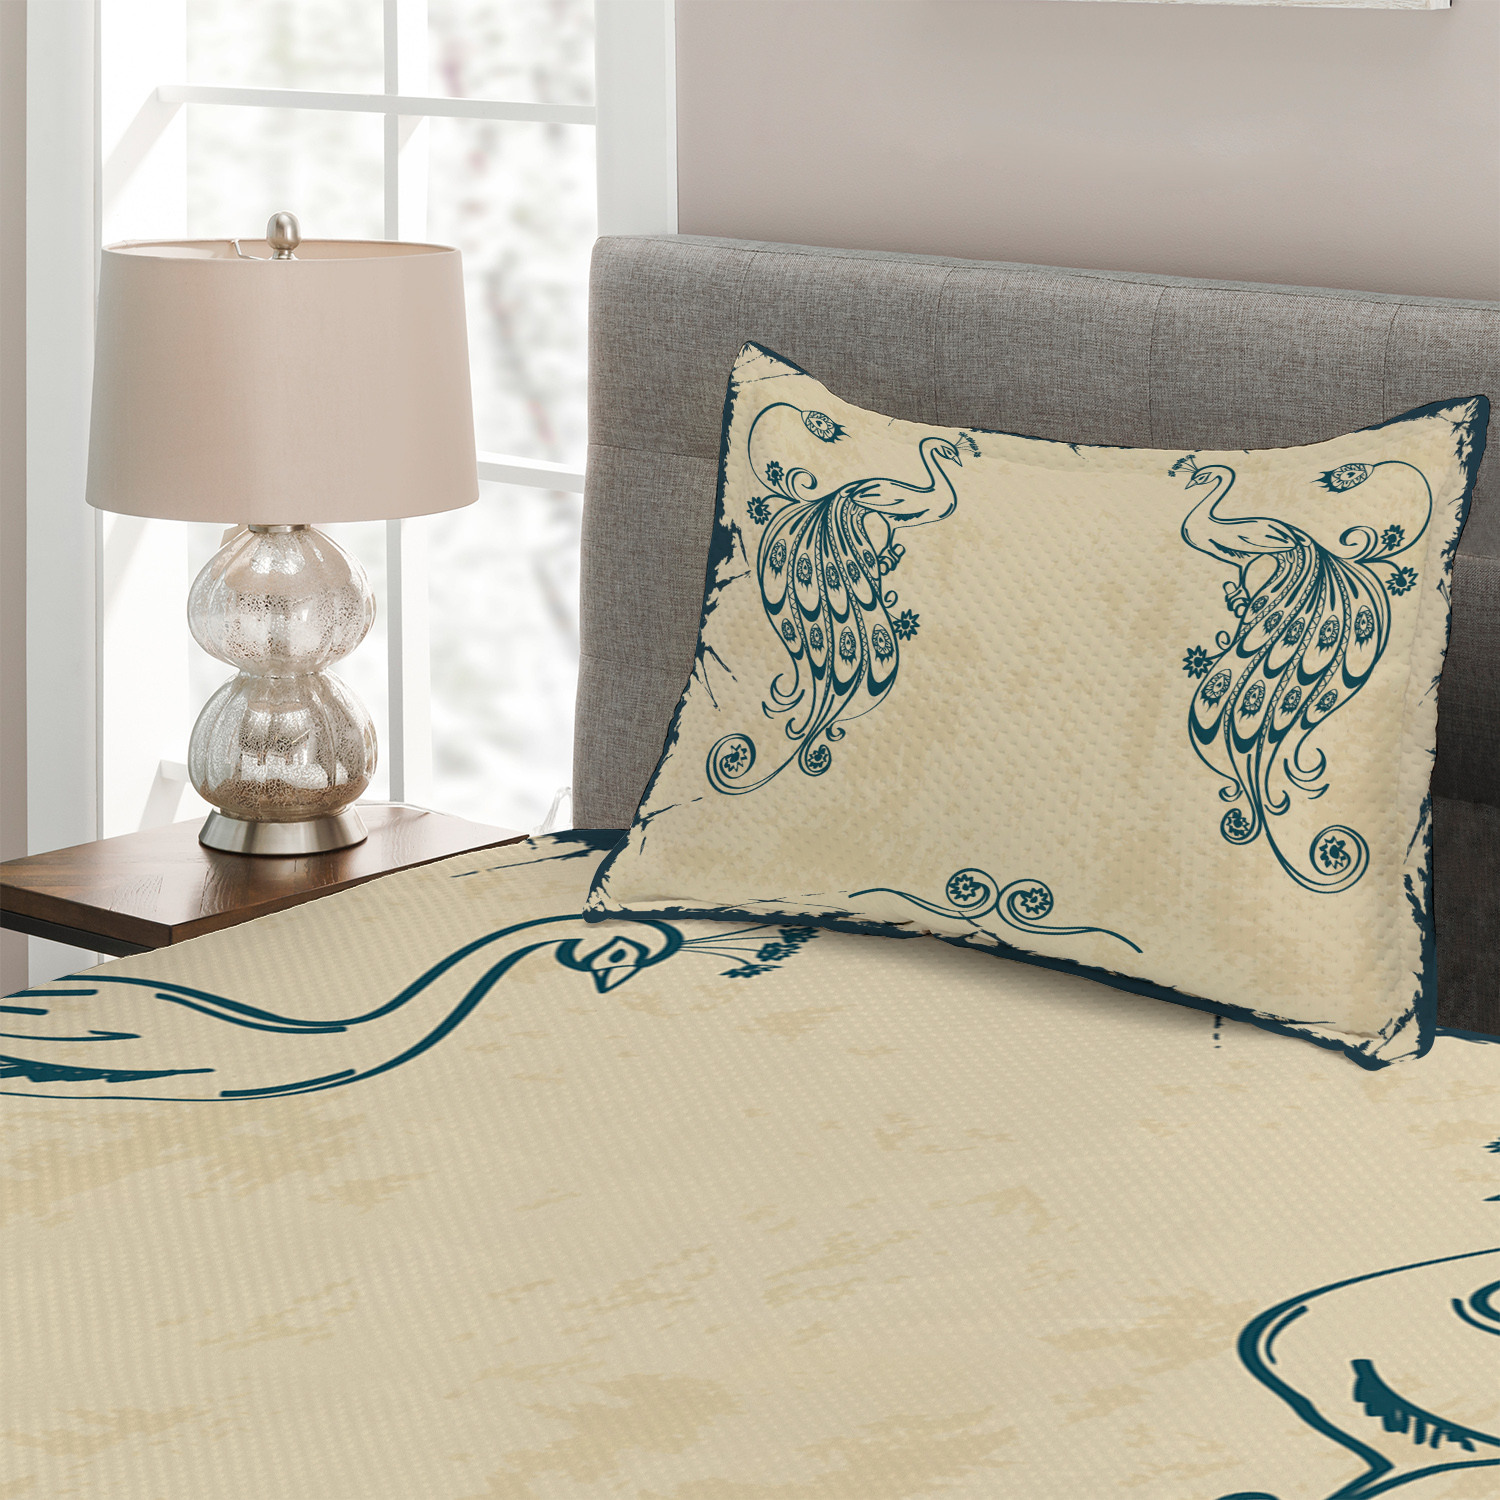 Beige-Teal-Quilted-Coverlet-amp-Pillow-Shams-Set-Vintage-Peacock-Bird-Print thumbnail 3